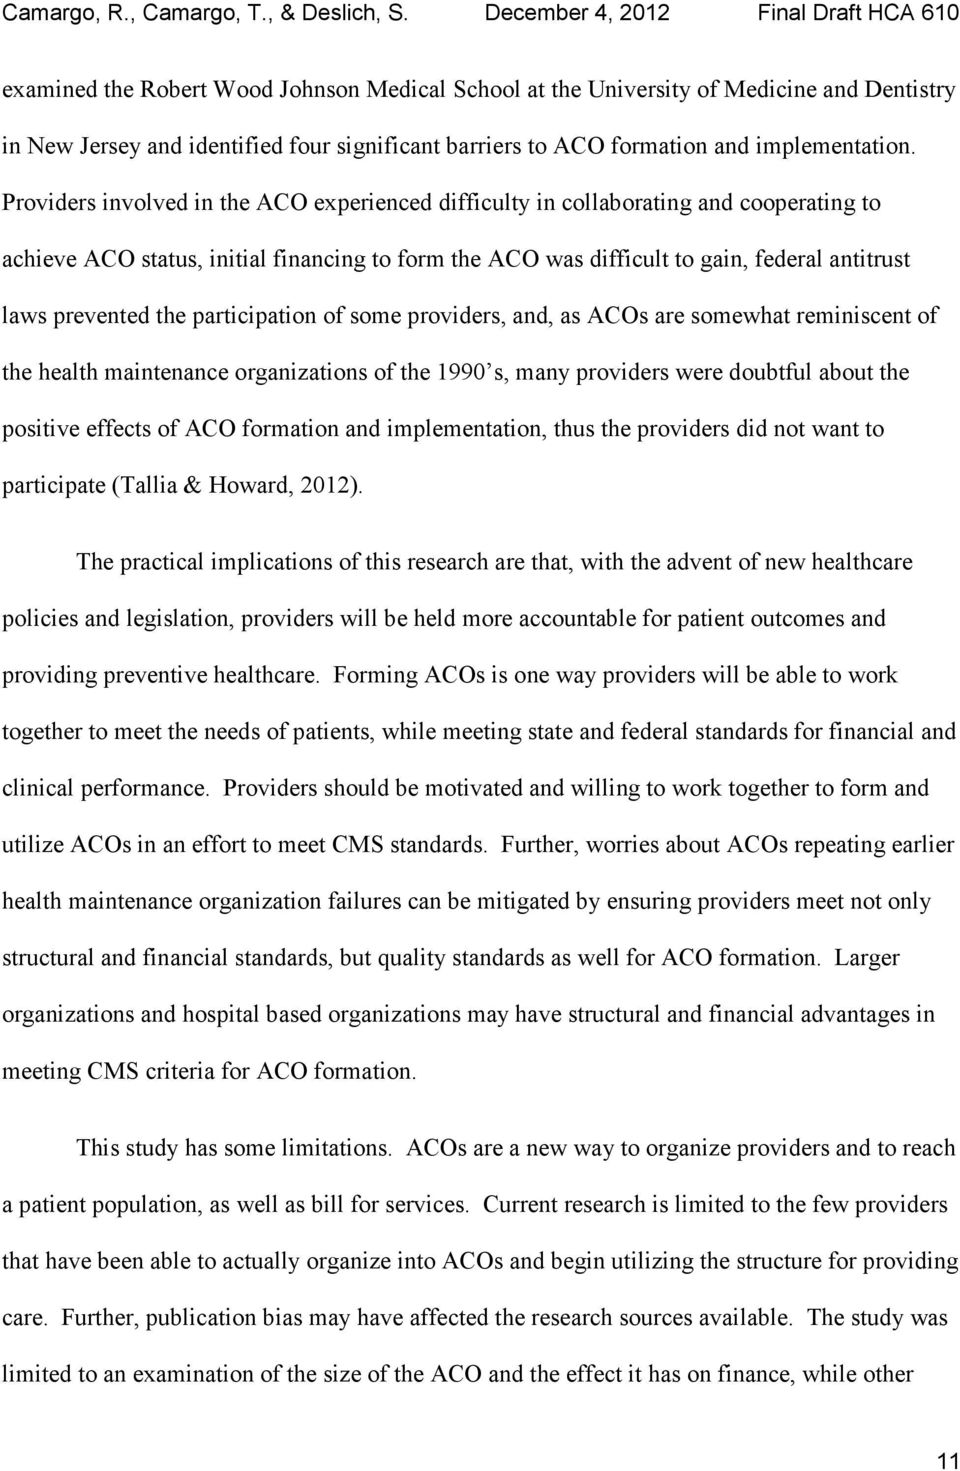 the participation of some providers, and, as ACOs are somewhat reminiscent of the health maintenance organizations of the 1990 s, many providers were doubtful about the positive effects of ACO